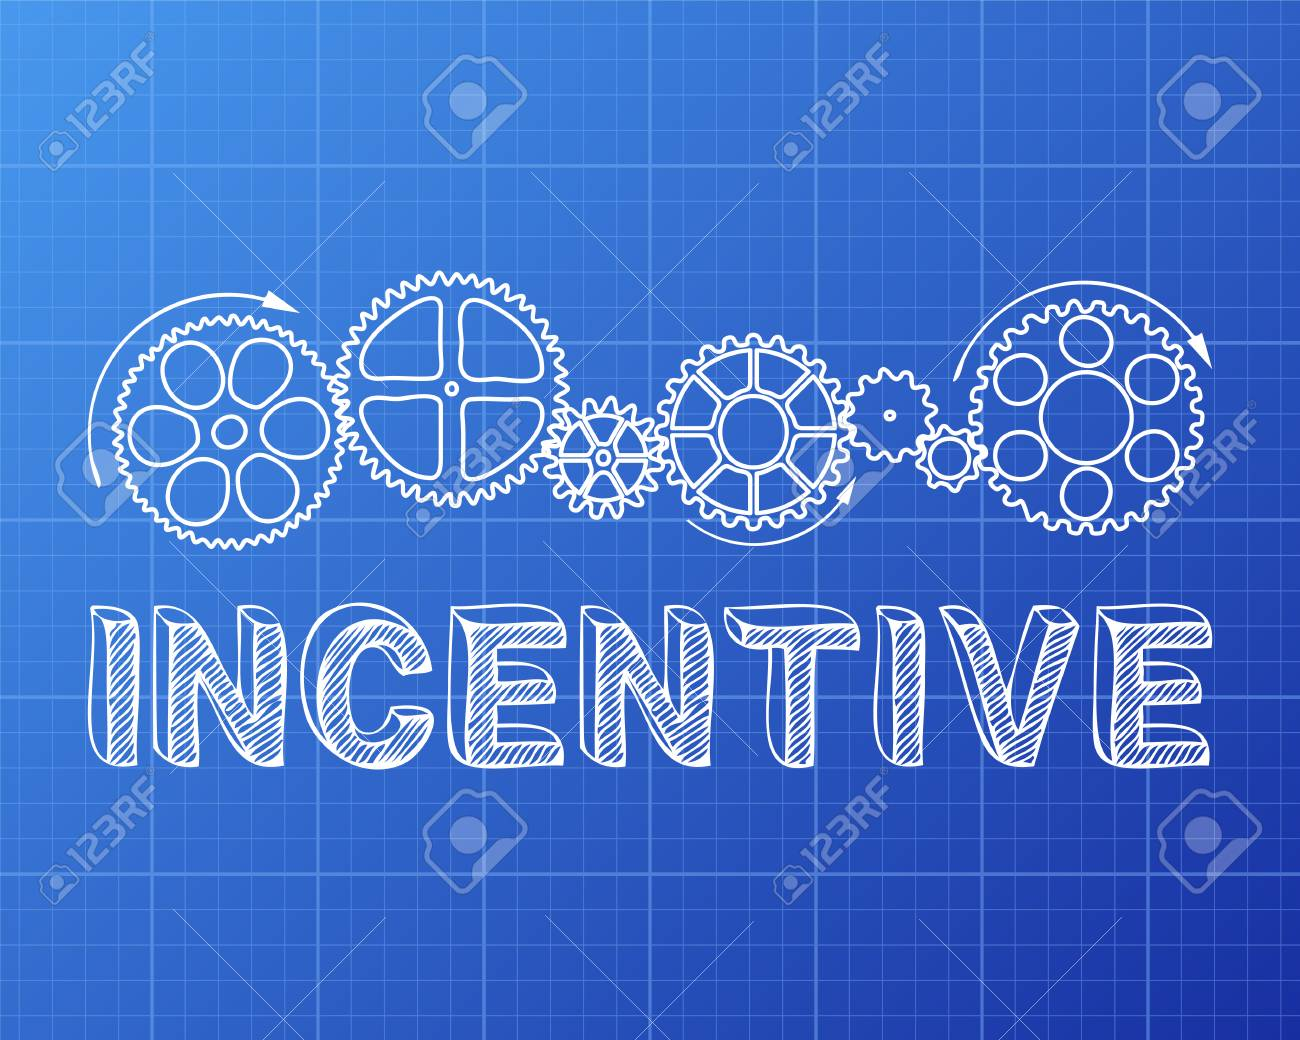 Incentive text with gear wheels hand drawn on blueprint background incentive text with gear wheels hand drawn on blueprint background stock vector 77755113 malvernweather Images